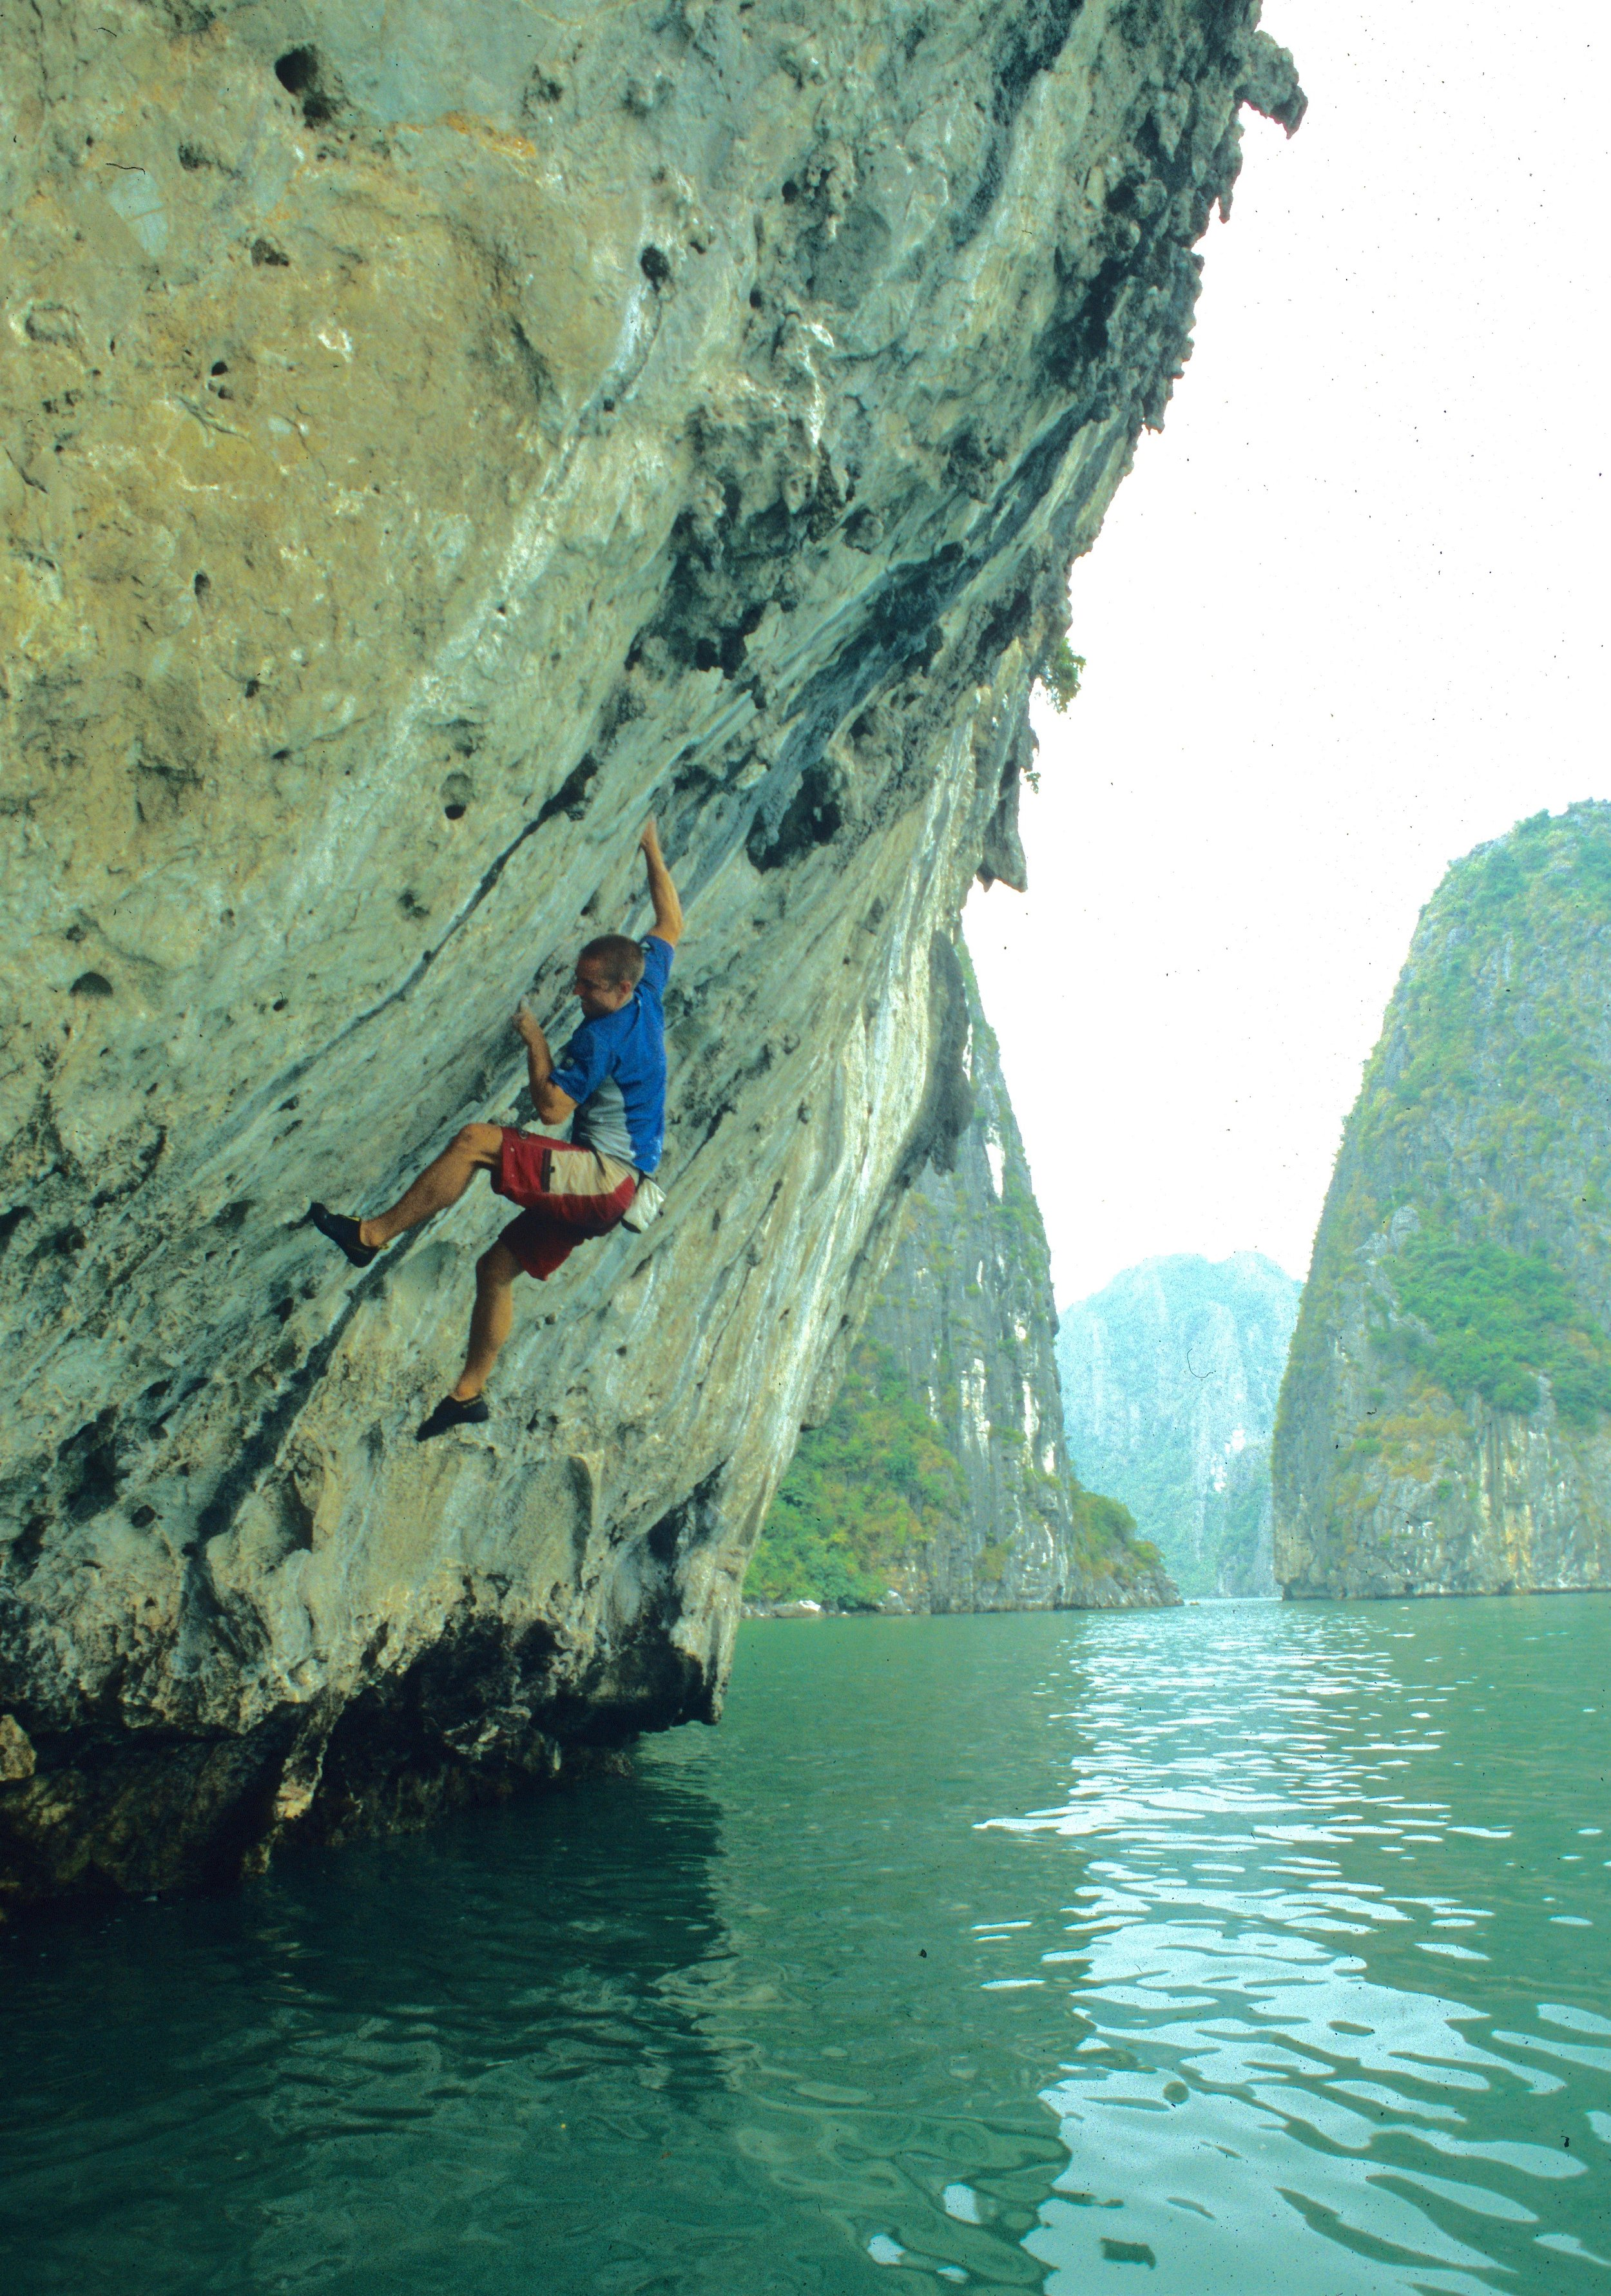 Arachnophobia 7b, Cathedral Rock. First ascent in 2003.  Photo: Gresham collection.